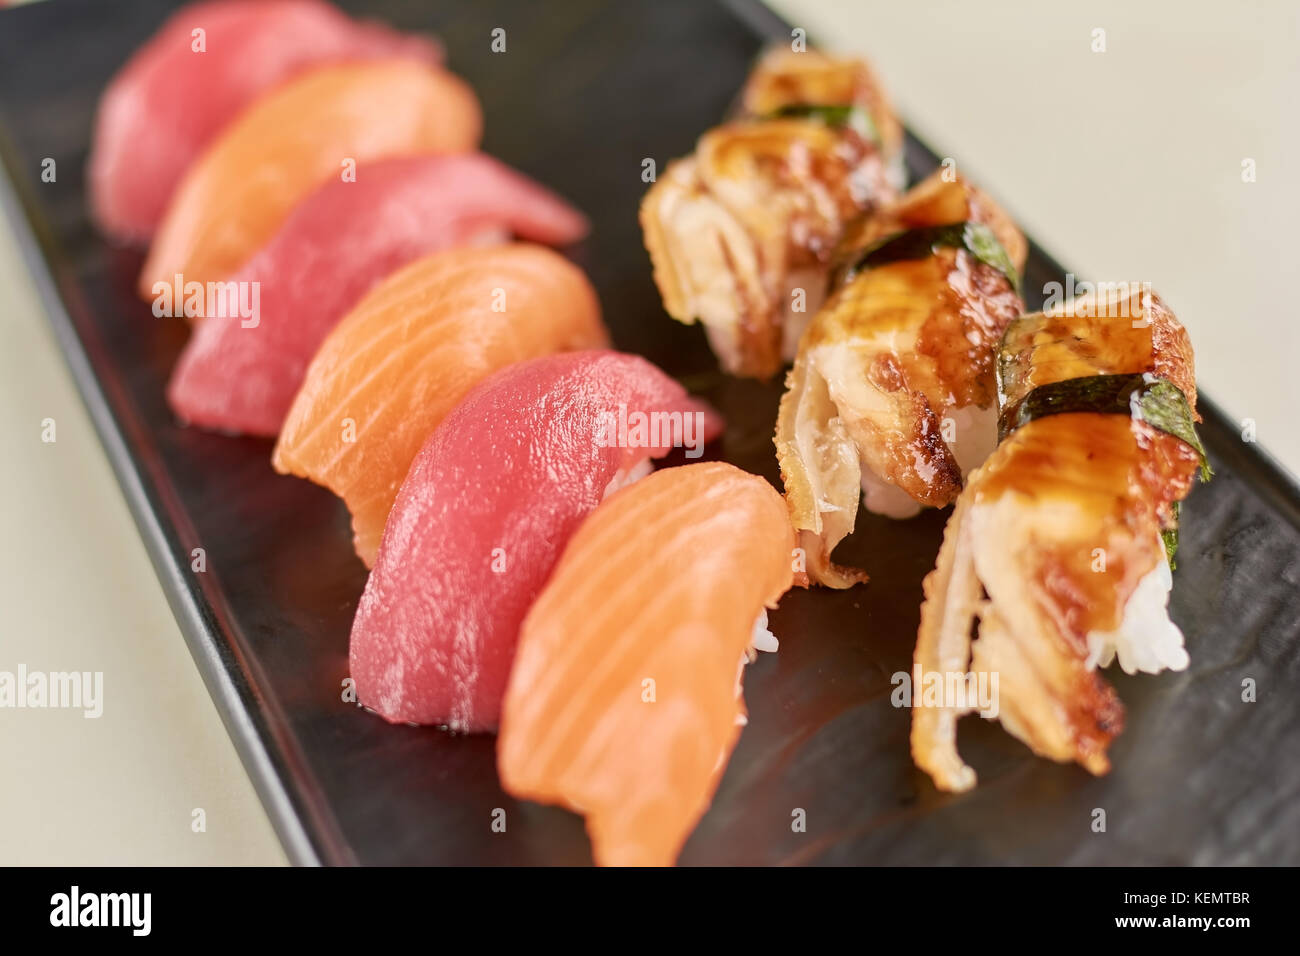 Sushi nigiri with salmon, tuna and eel. Close up of delicious sushi with fish on plate. Restaurant of seafood. - Stock Image